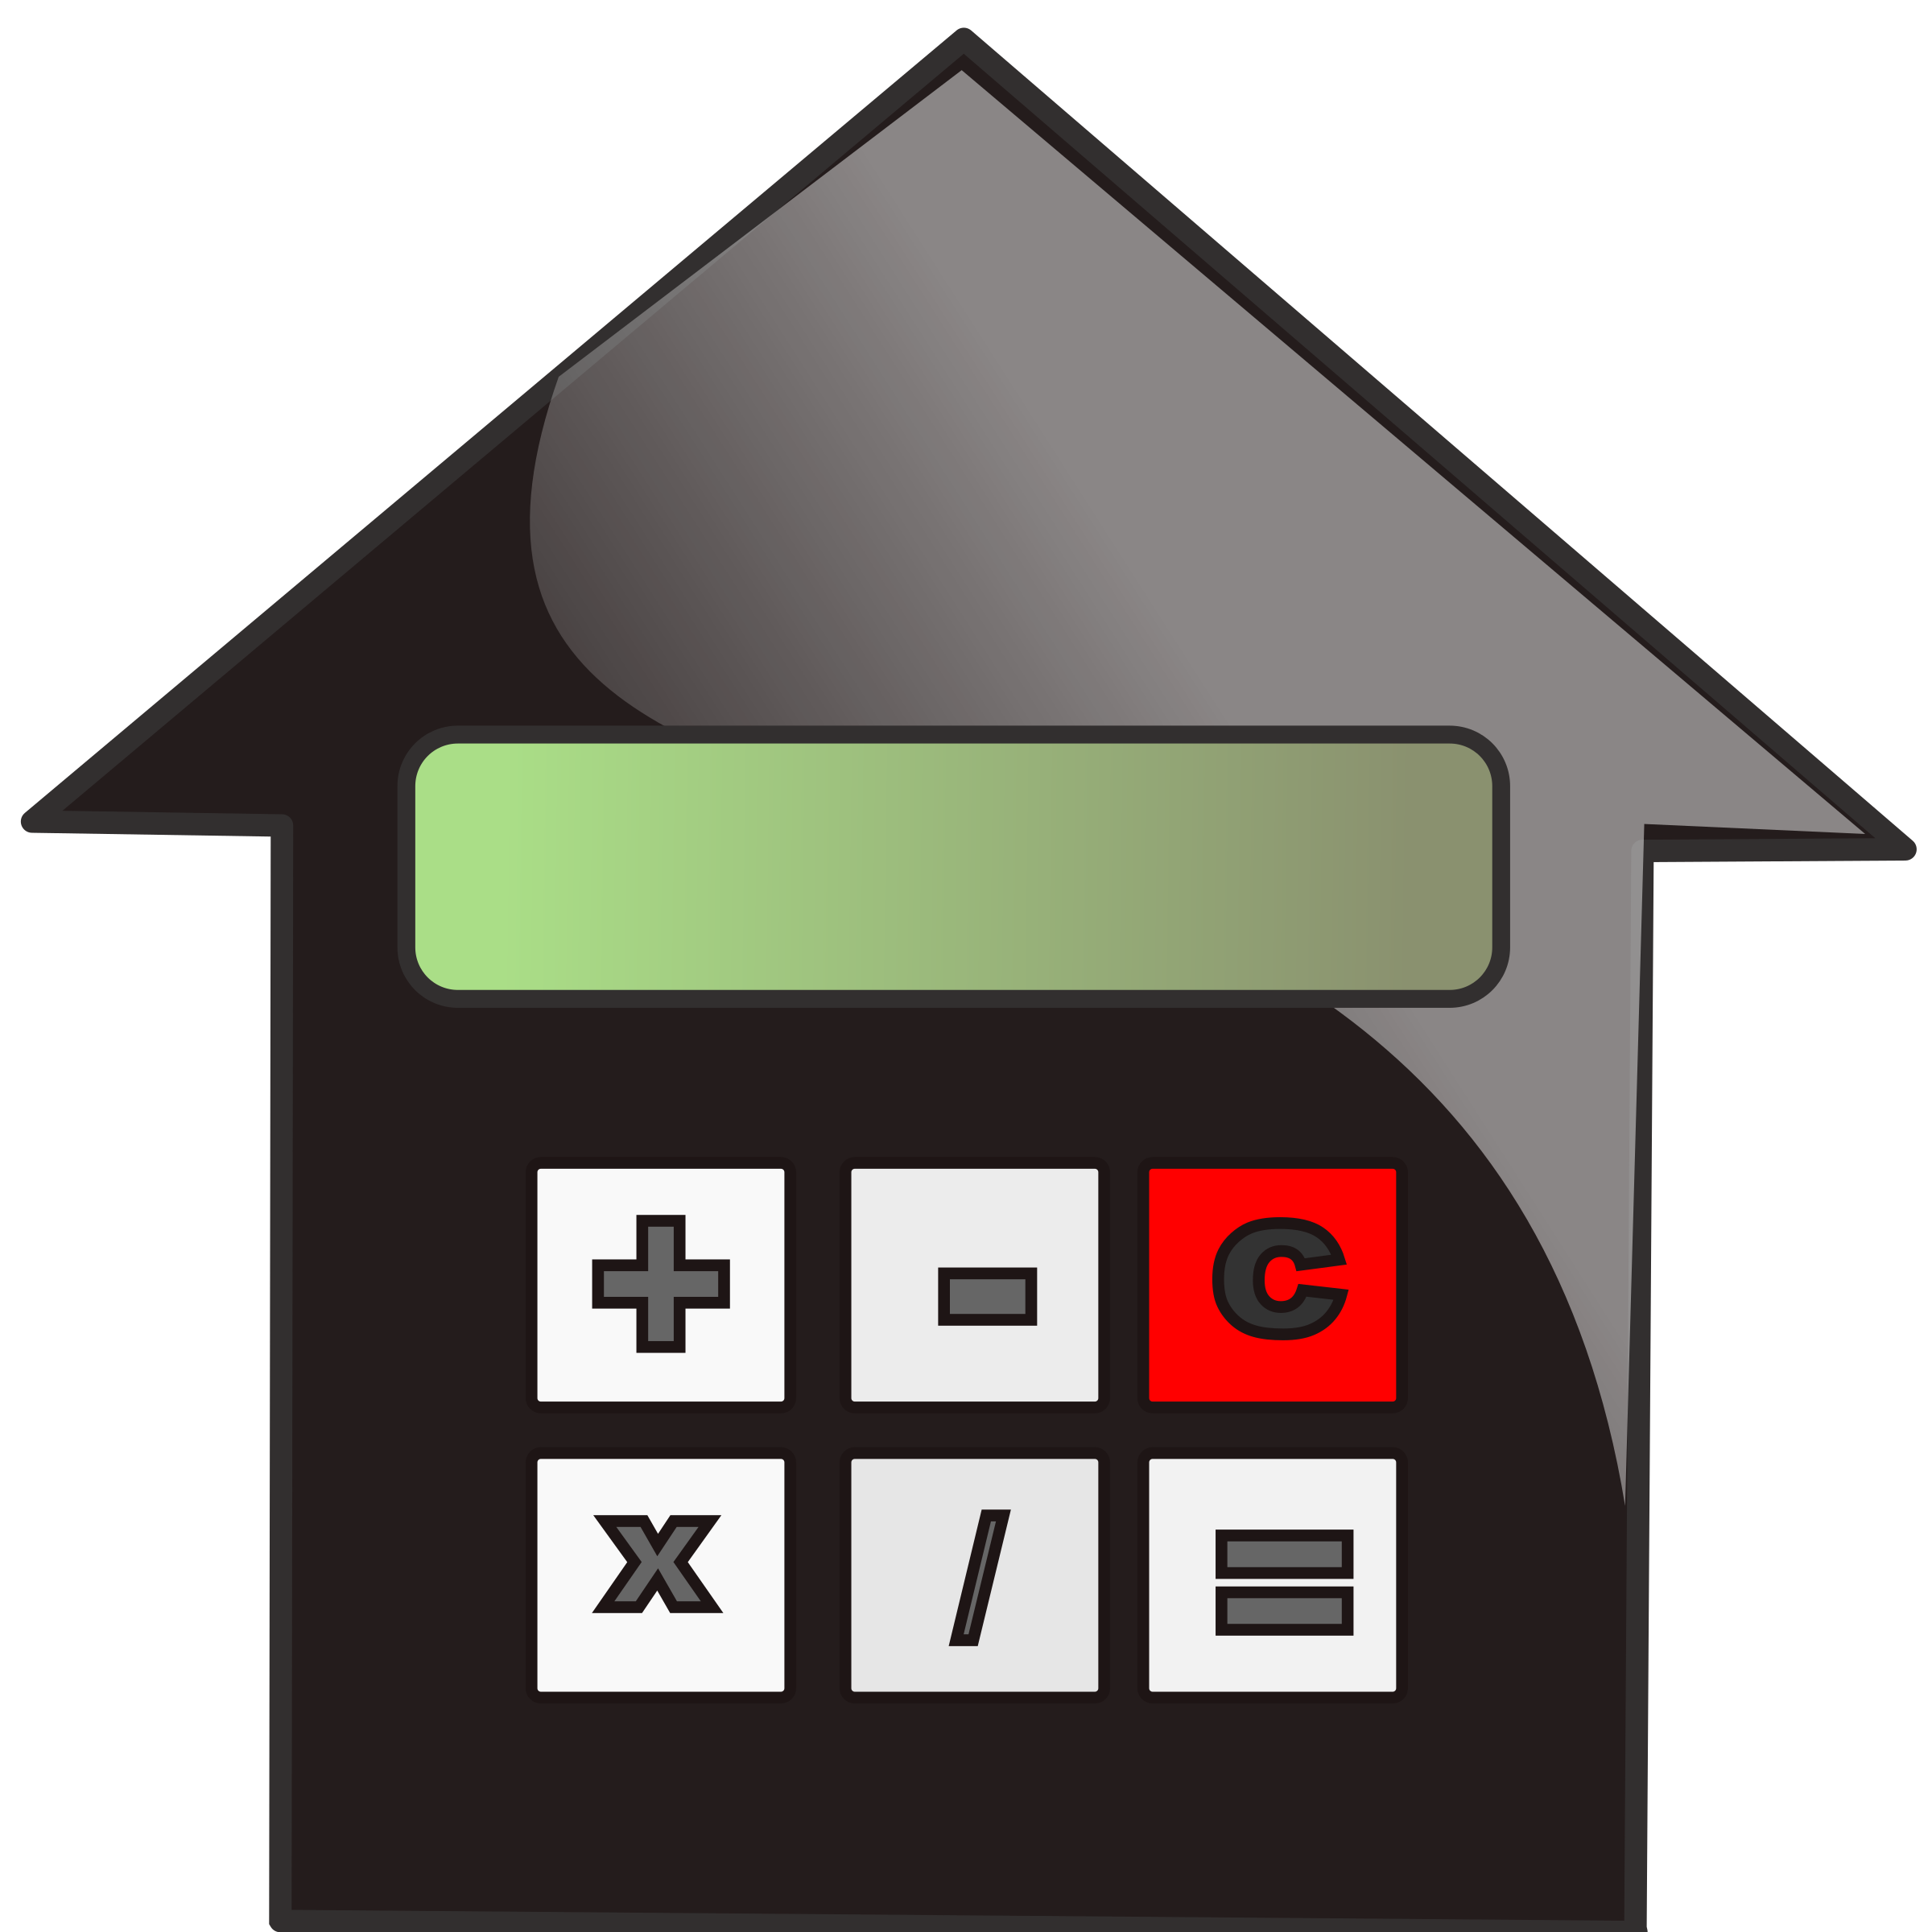 mortgage calculator by netalloy